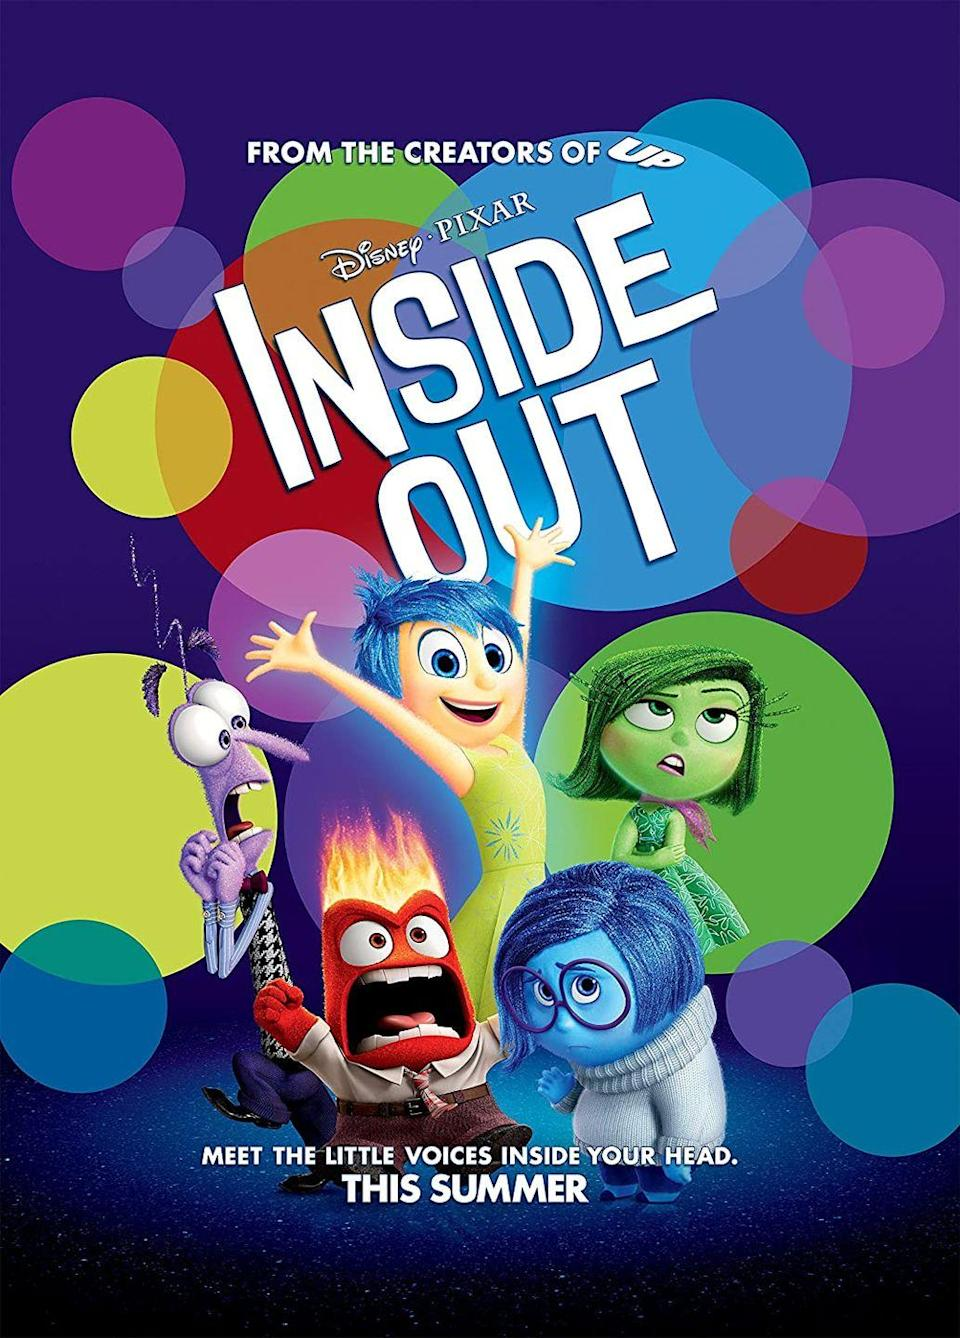 <p><strong>Why didn't Joy send the memories up in the tube? </strong></p><p><em>Inside Out</em> imagines how youth brains work through emotions in the form of marble-like memories colored by each feel. The plot of the movie follows Joy (Amy Poehler) and Sadness (Phyllis Smith) trying to bring 11-year-old Riley's core memories back to the command center. </p><p>The two see maintenance workers sending memories up the recall tube to be played in Riley's head, the place where they're trying to go. Joy has the idea of hitching a ride on the tube, but she is too heavy and it doesn't work. Our question: Why doesn't Joy just send the memories up the tube by themselves?</p>